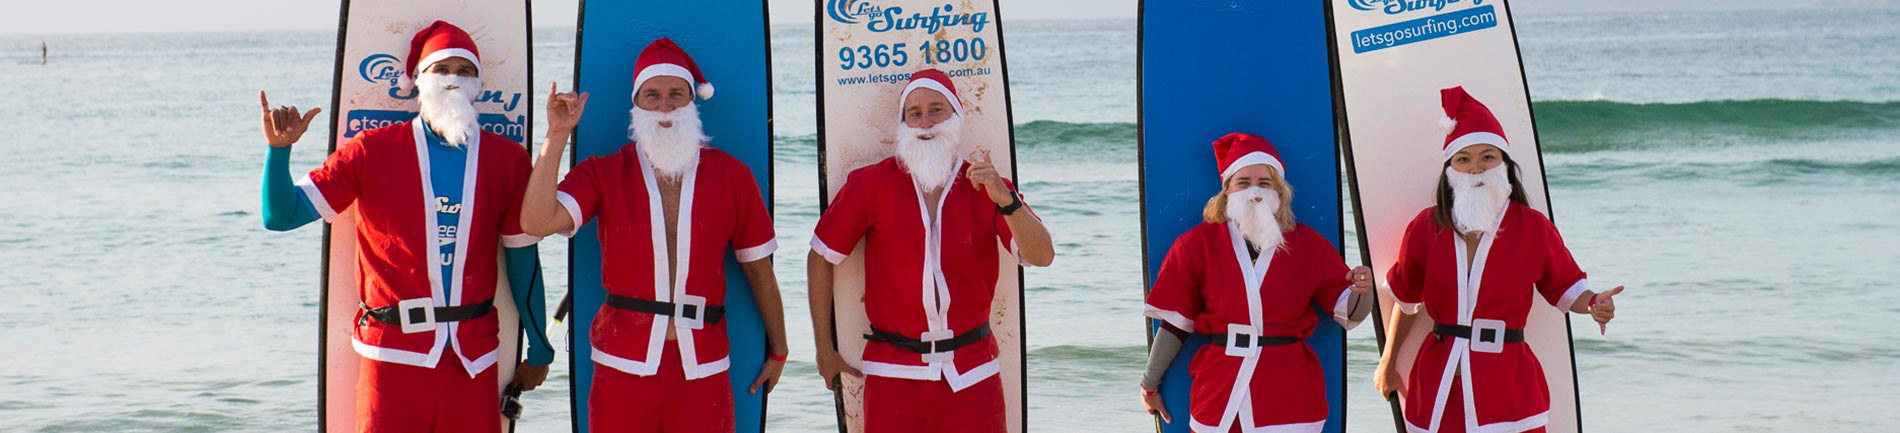 Santa's Surfing To Promote Corporate Charity Fundraising